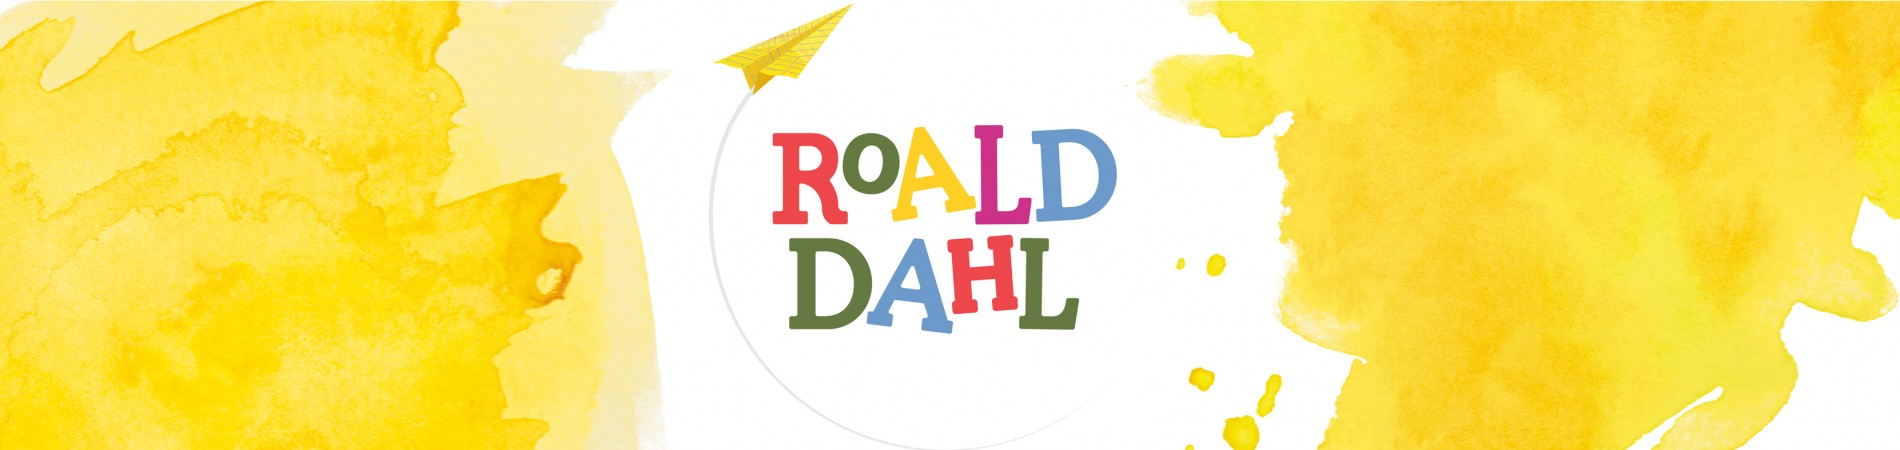 Roald Dahl brand is managed by DRi